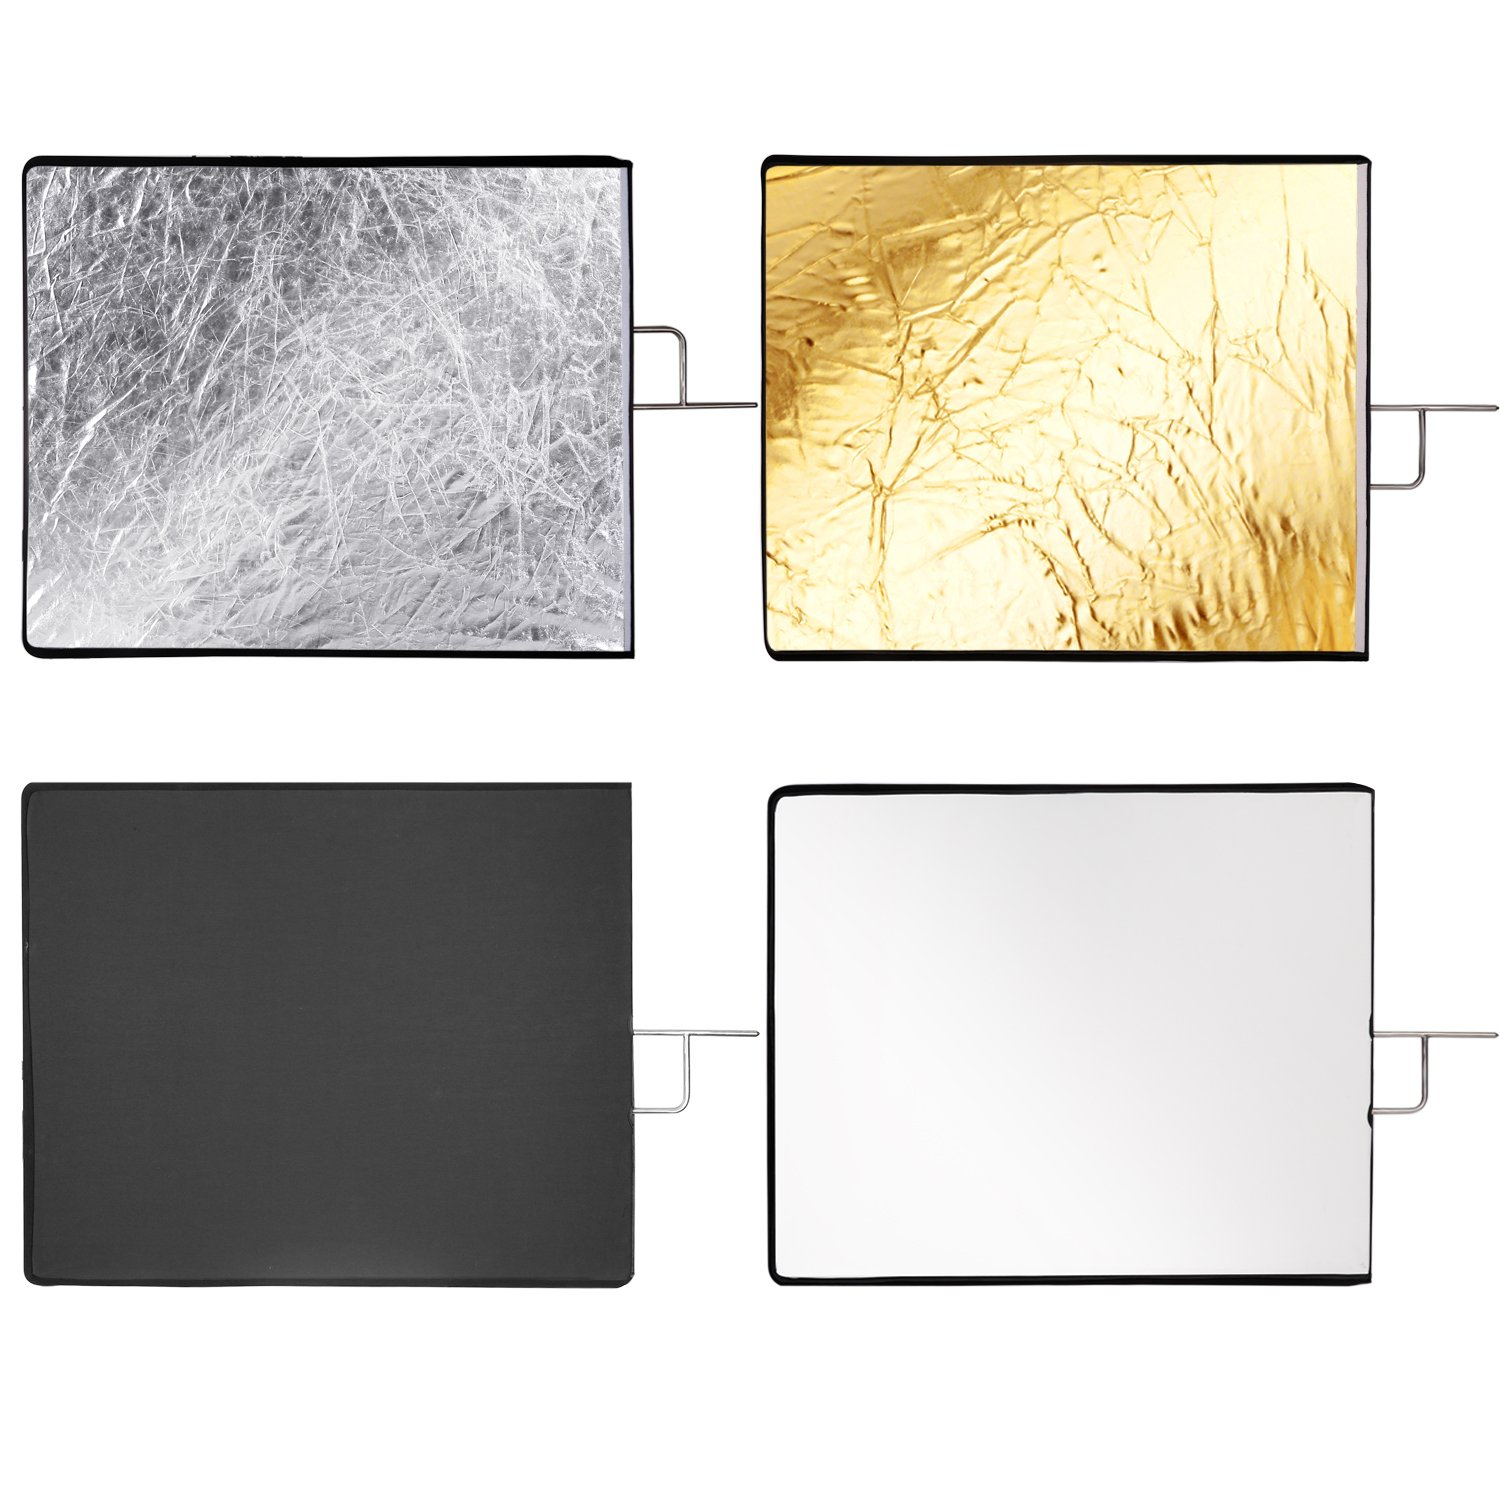 Neewer 30x36 inches 4-in-1 Metal Flag Panel Set Reflector with Soft White, Black, Silver and Gold Cover Cloth for Photo Video Studio Photography by Neewer (Image #4)